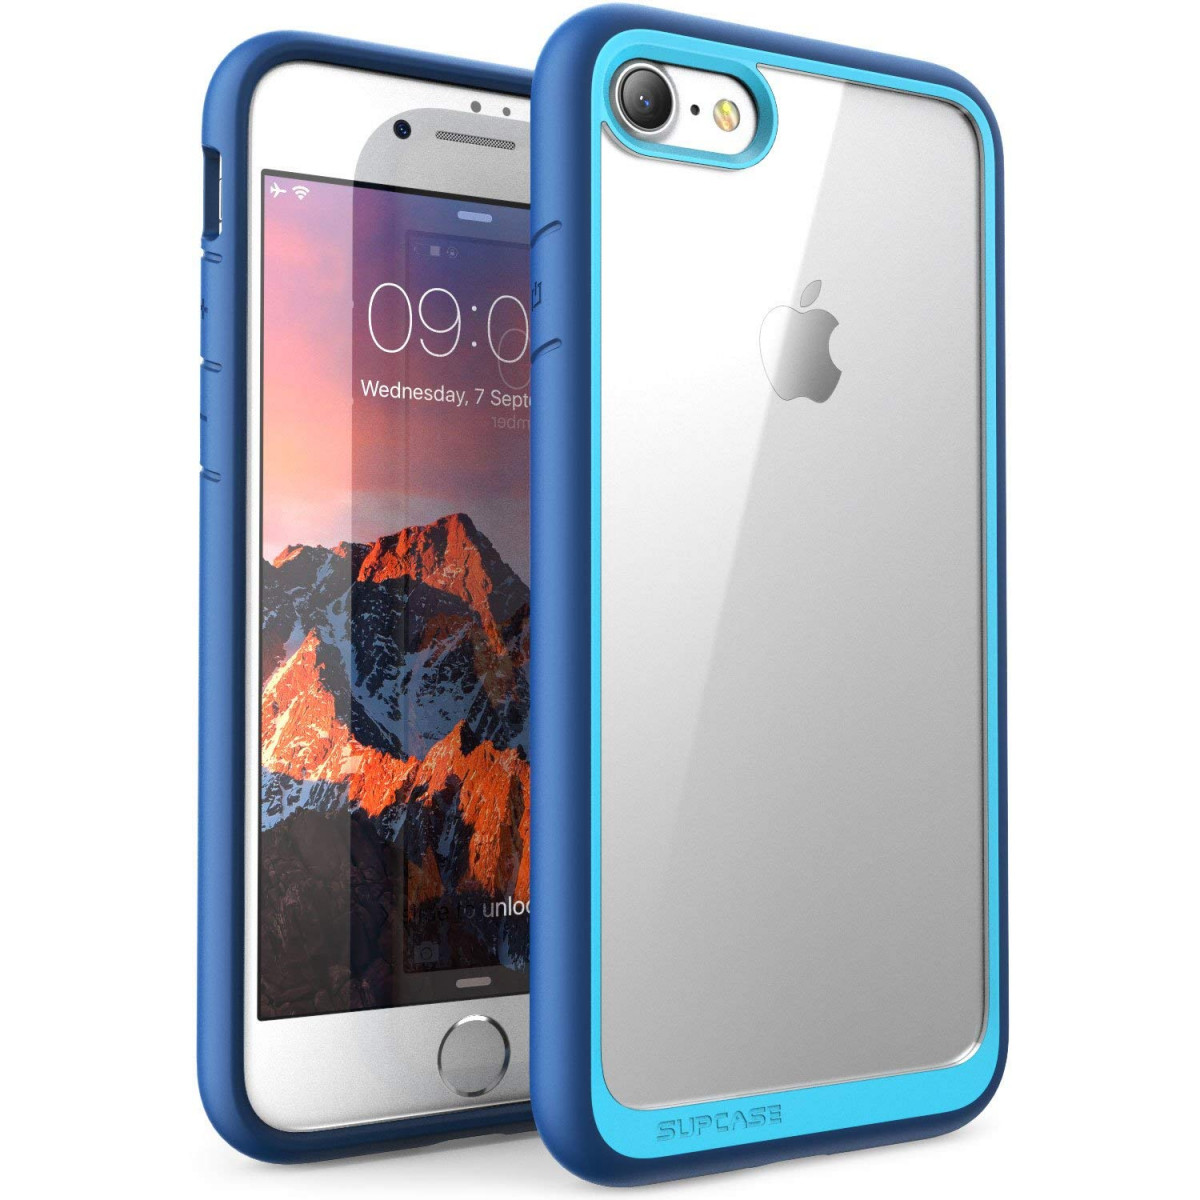 promo code 9d6f6 d9cab iPhone 7 Case, iPhone 8 Case, SUPCASE Unicorn Beetle Style Premium Hybrid  Protective Clear Case for Apple iPhone 7 2016 / iPhone 8 2017